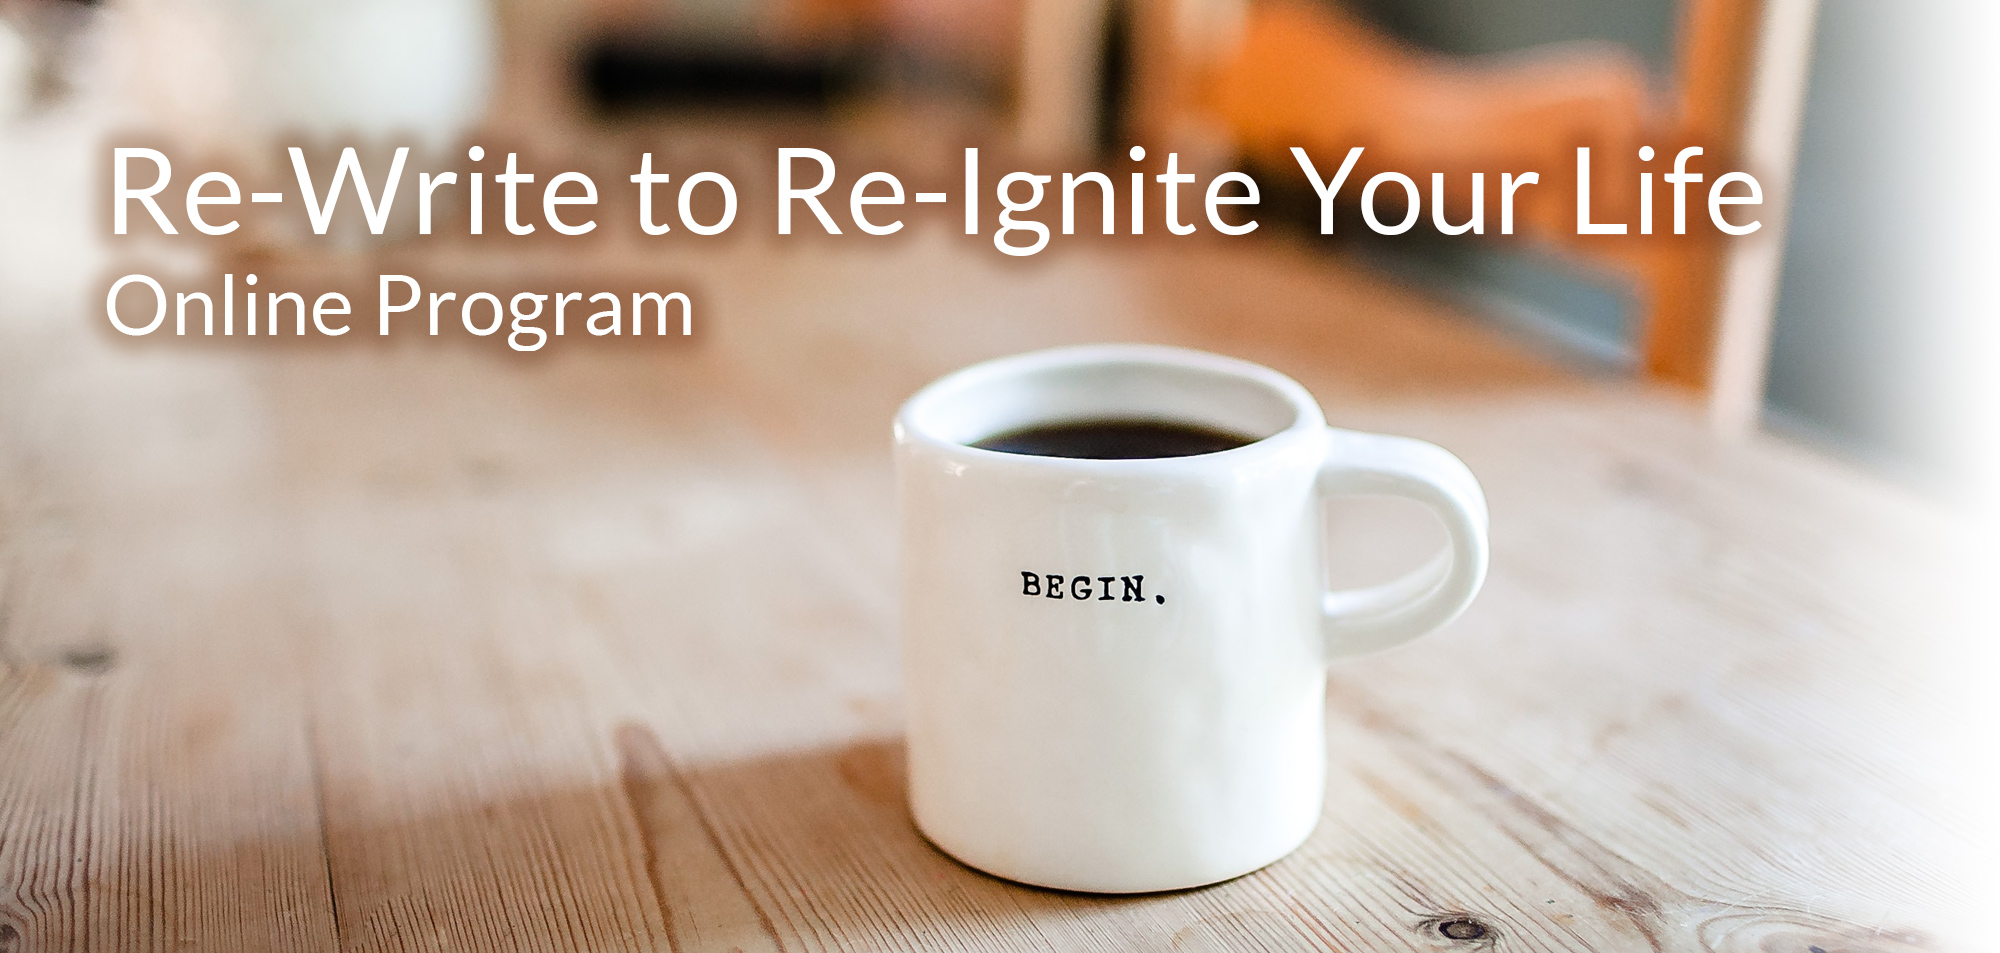 Re-Write to Re-Ignite Your Life, online course by Junie Swadron